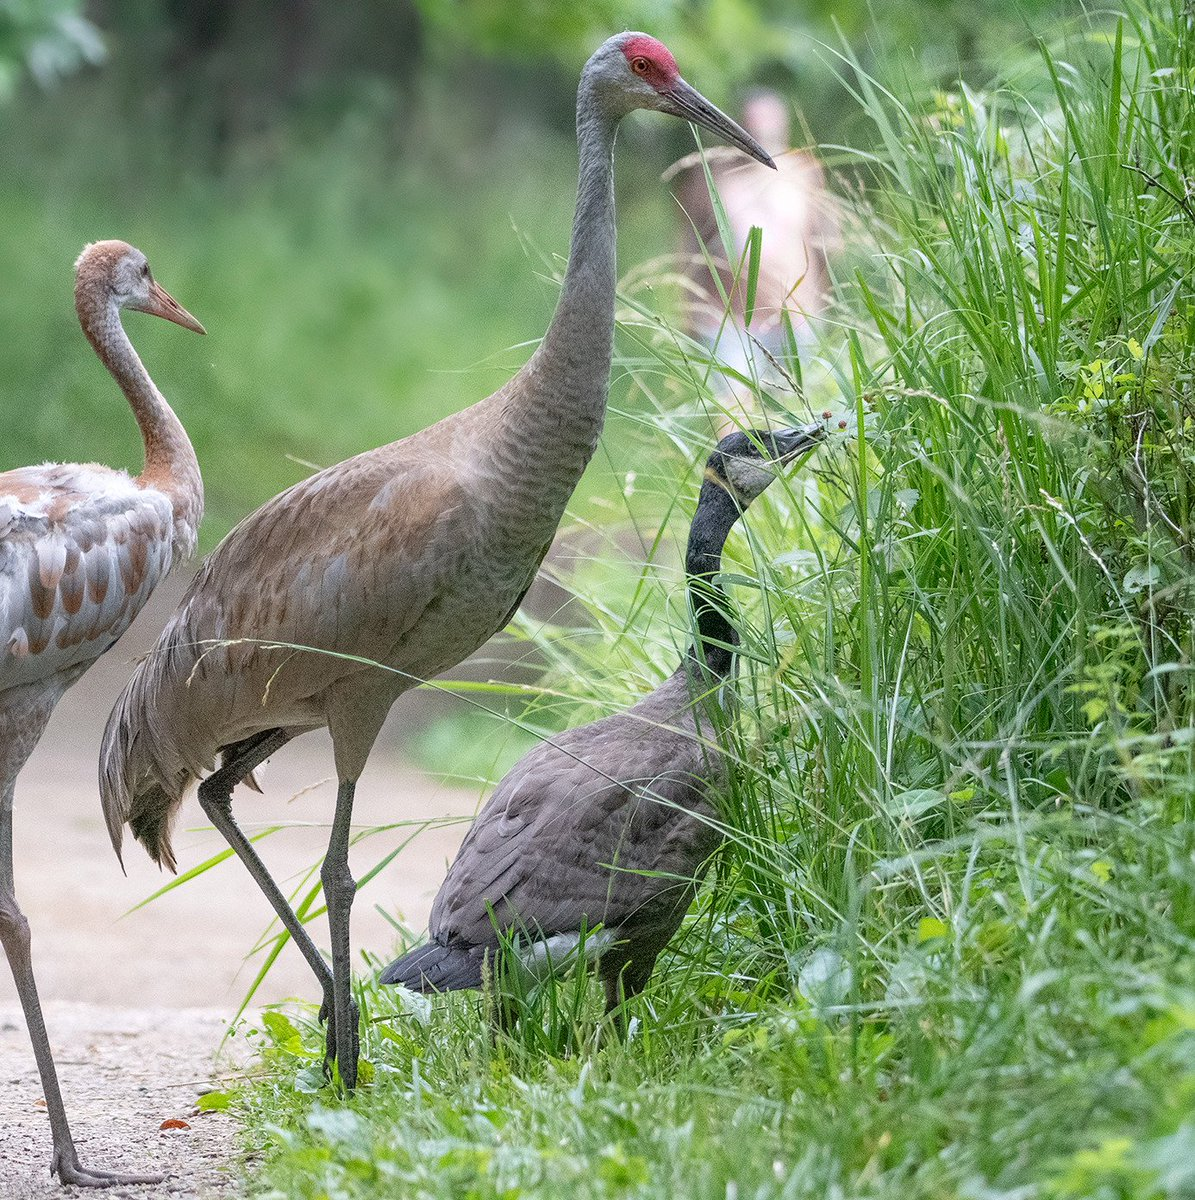 Sandhill Crane Family With Adopted Gosling Jocelyn >> Jocelyn Anderson Photography On Twitter The Sandhill Crane Family